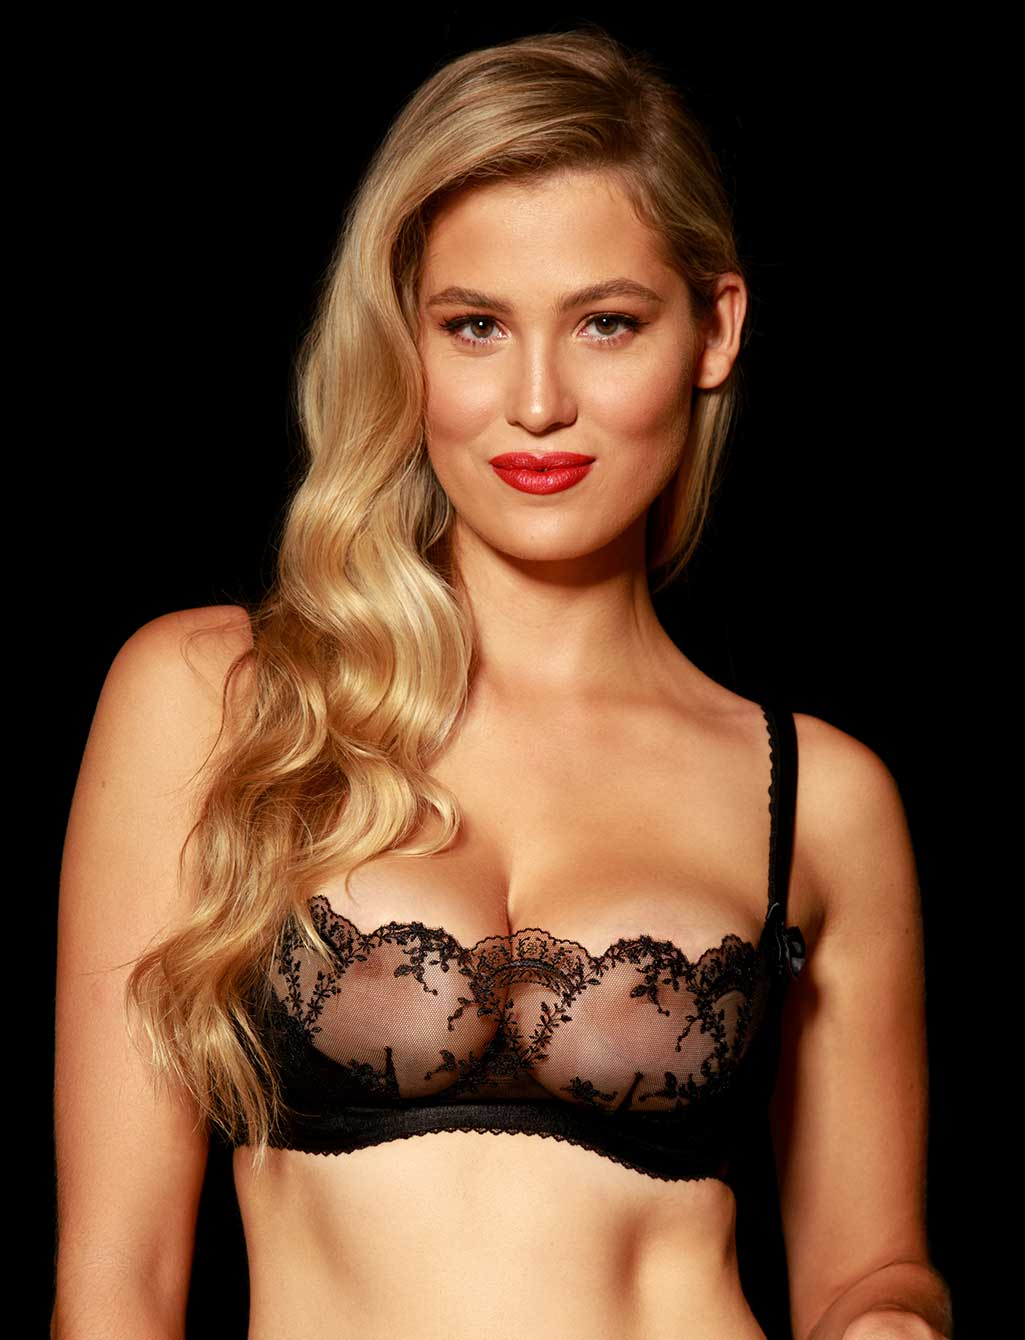 Layla Black Lace Babydoll Underwire Bra | Shop  Lingerie Honey Birdette